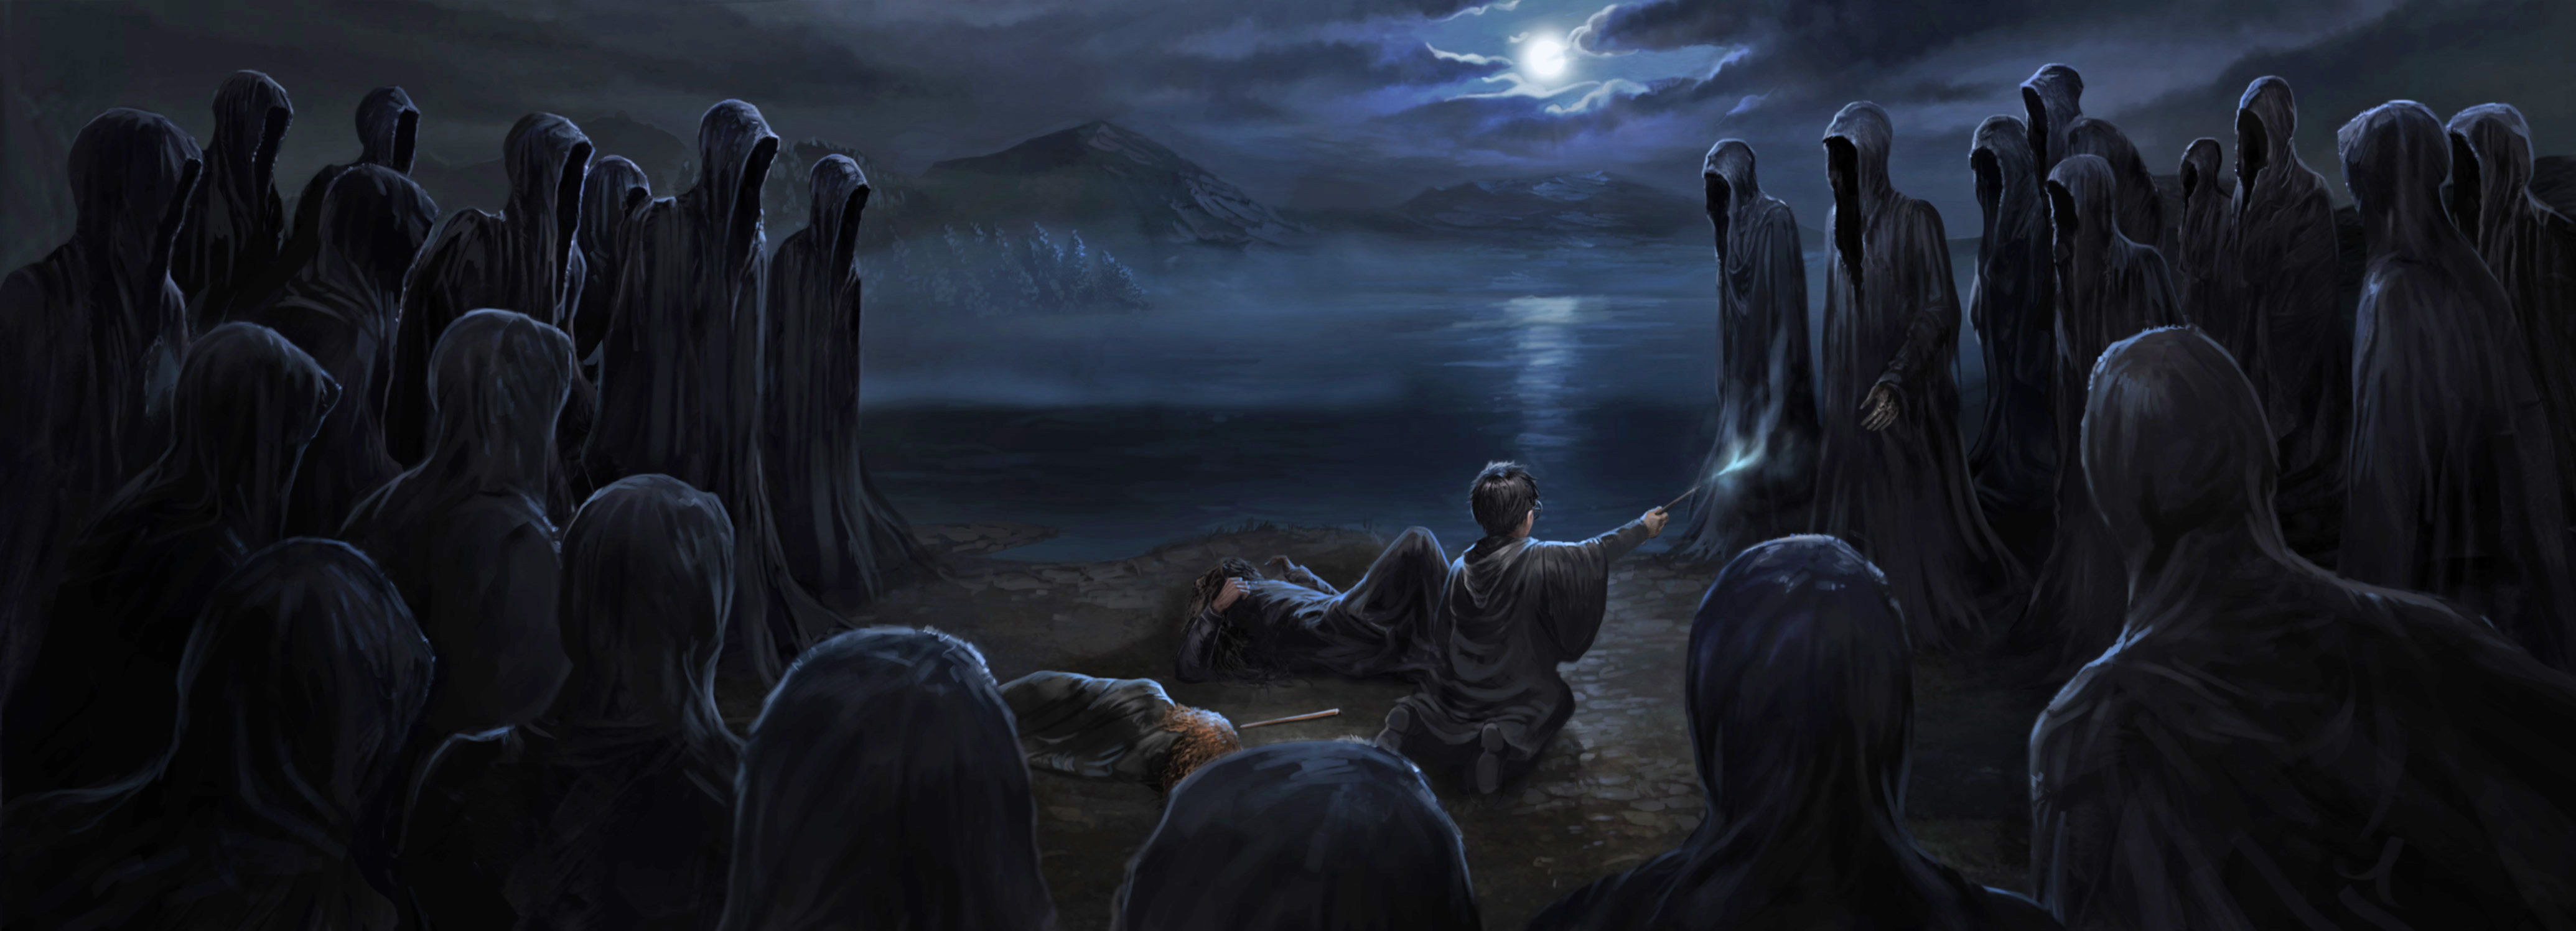 Harry, Hermione and Sirius are overwhelmed by a swarm of Dementors by the lake.